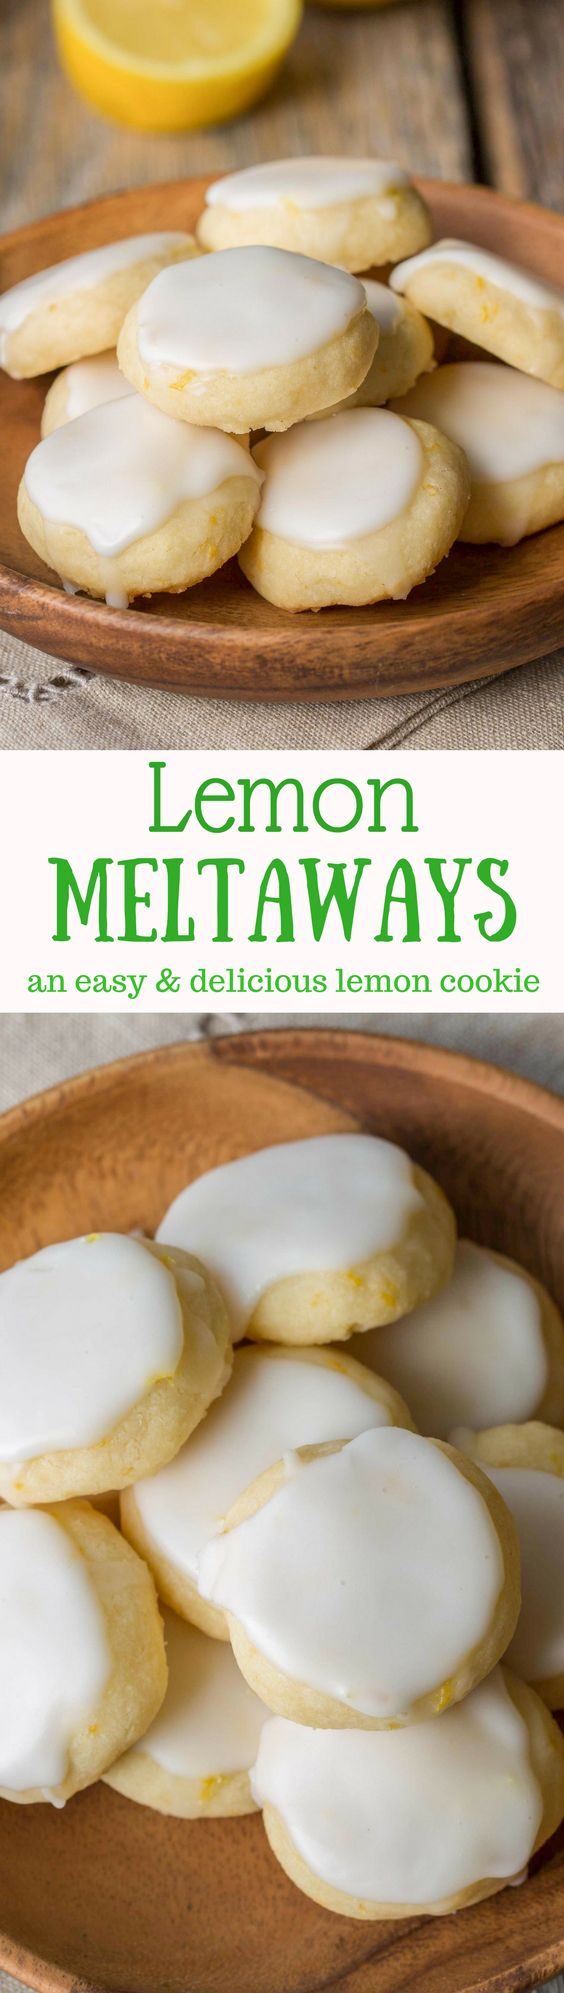 ... lemon | lemon dessert | cookie | lemon cookie | lemon meltaway